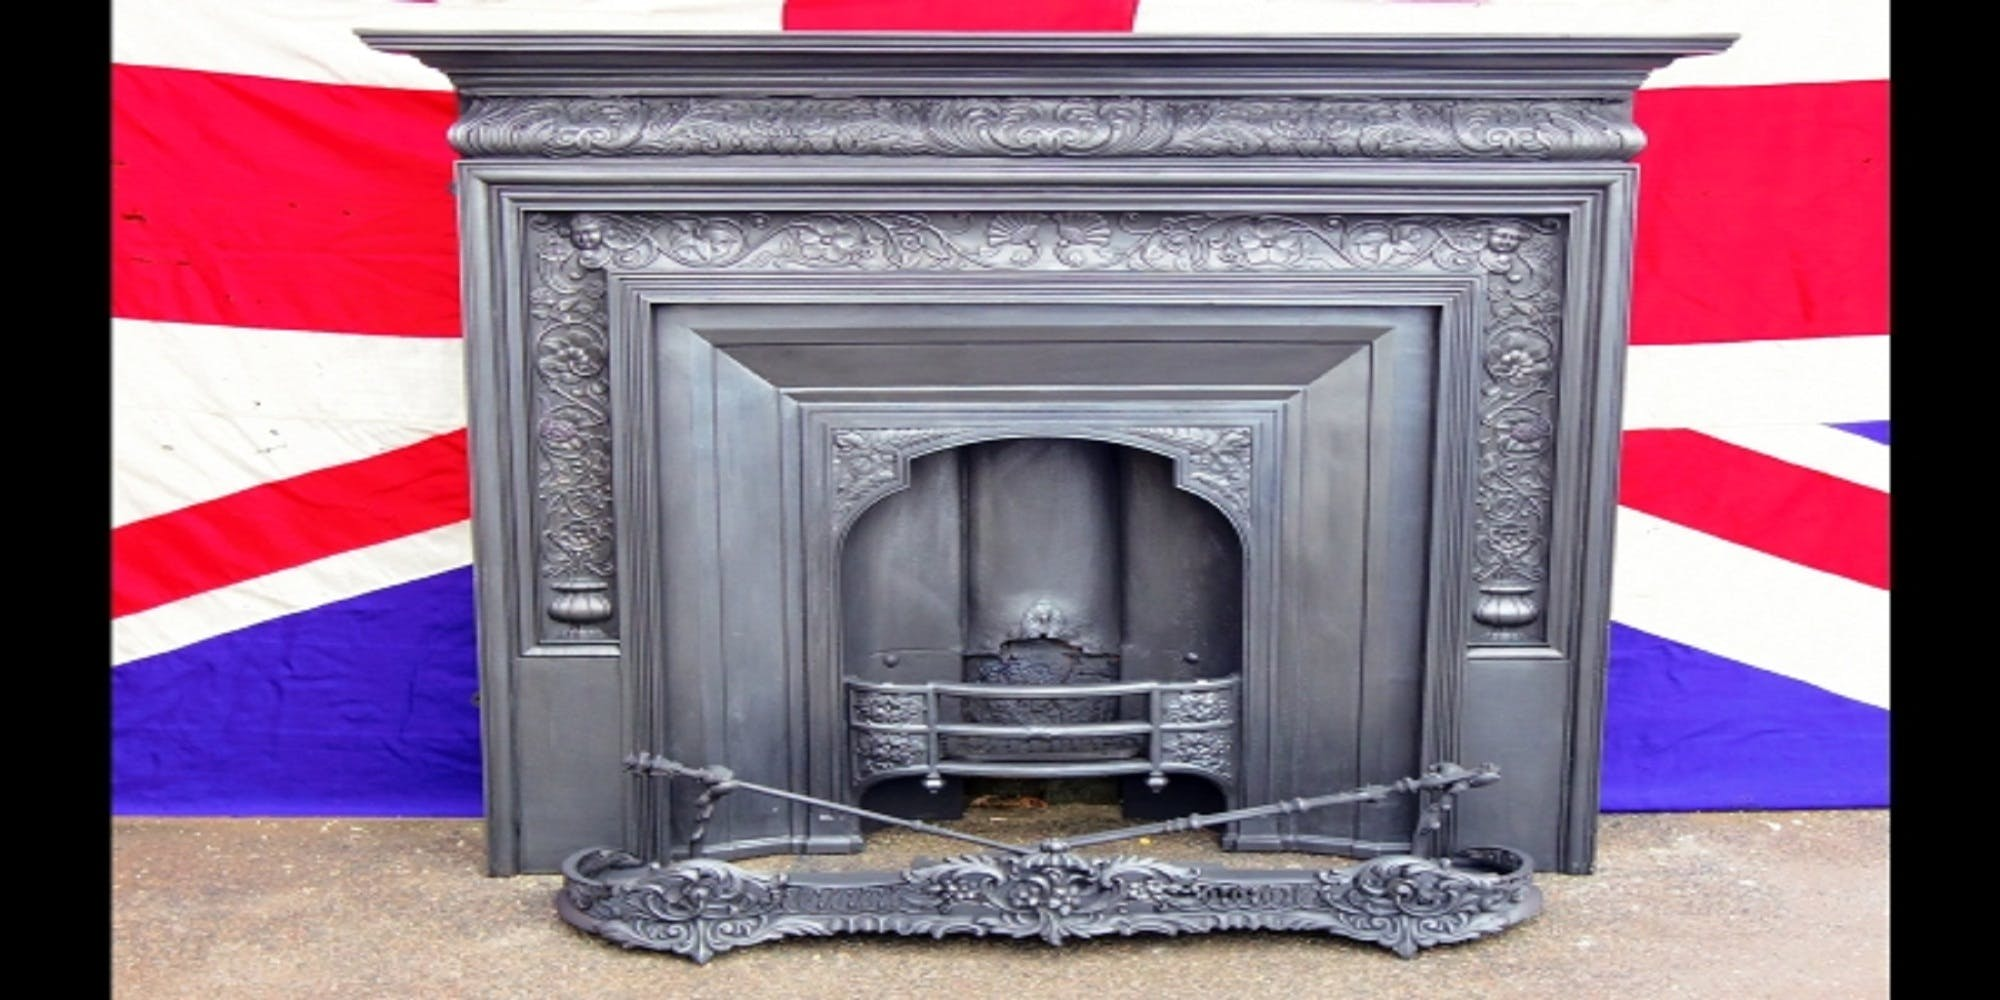 Free stock photo of Victorian Cast Iron Coalbrookdale Fireplace Fire